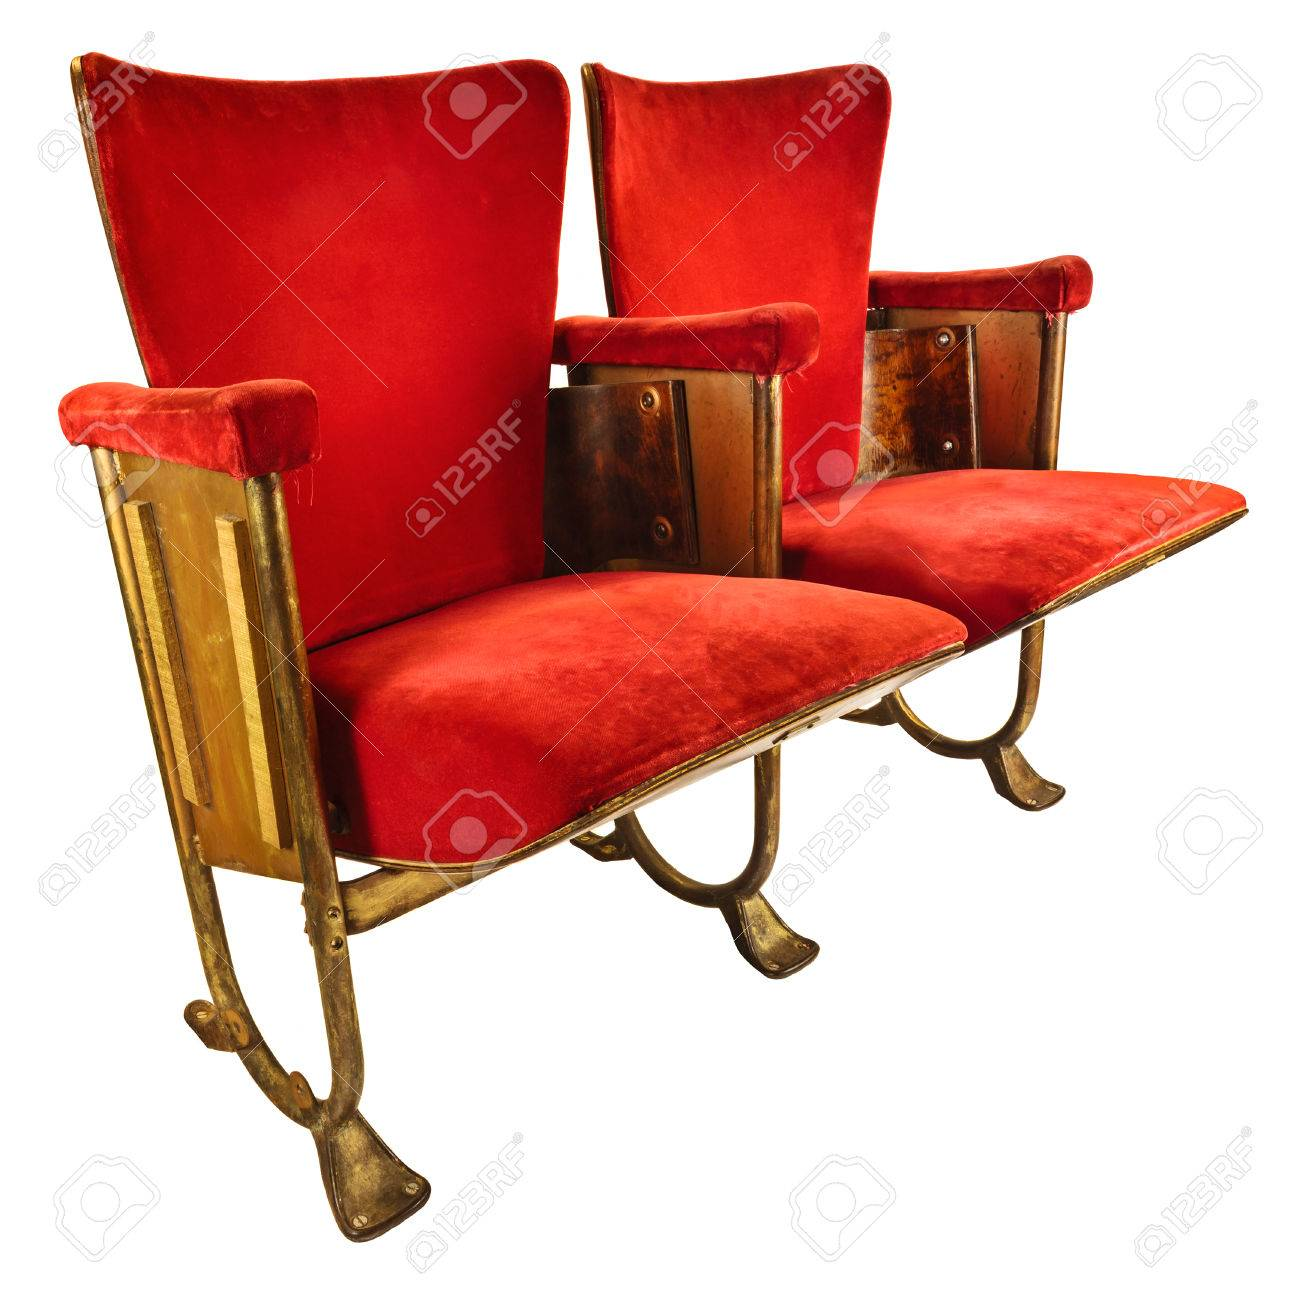 stock photo two vintage red movie theater chairs isolated on a white background